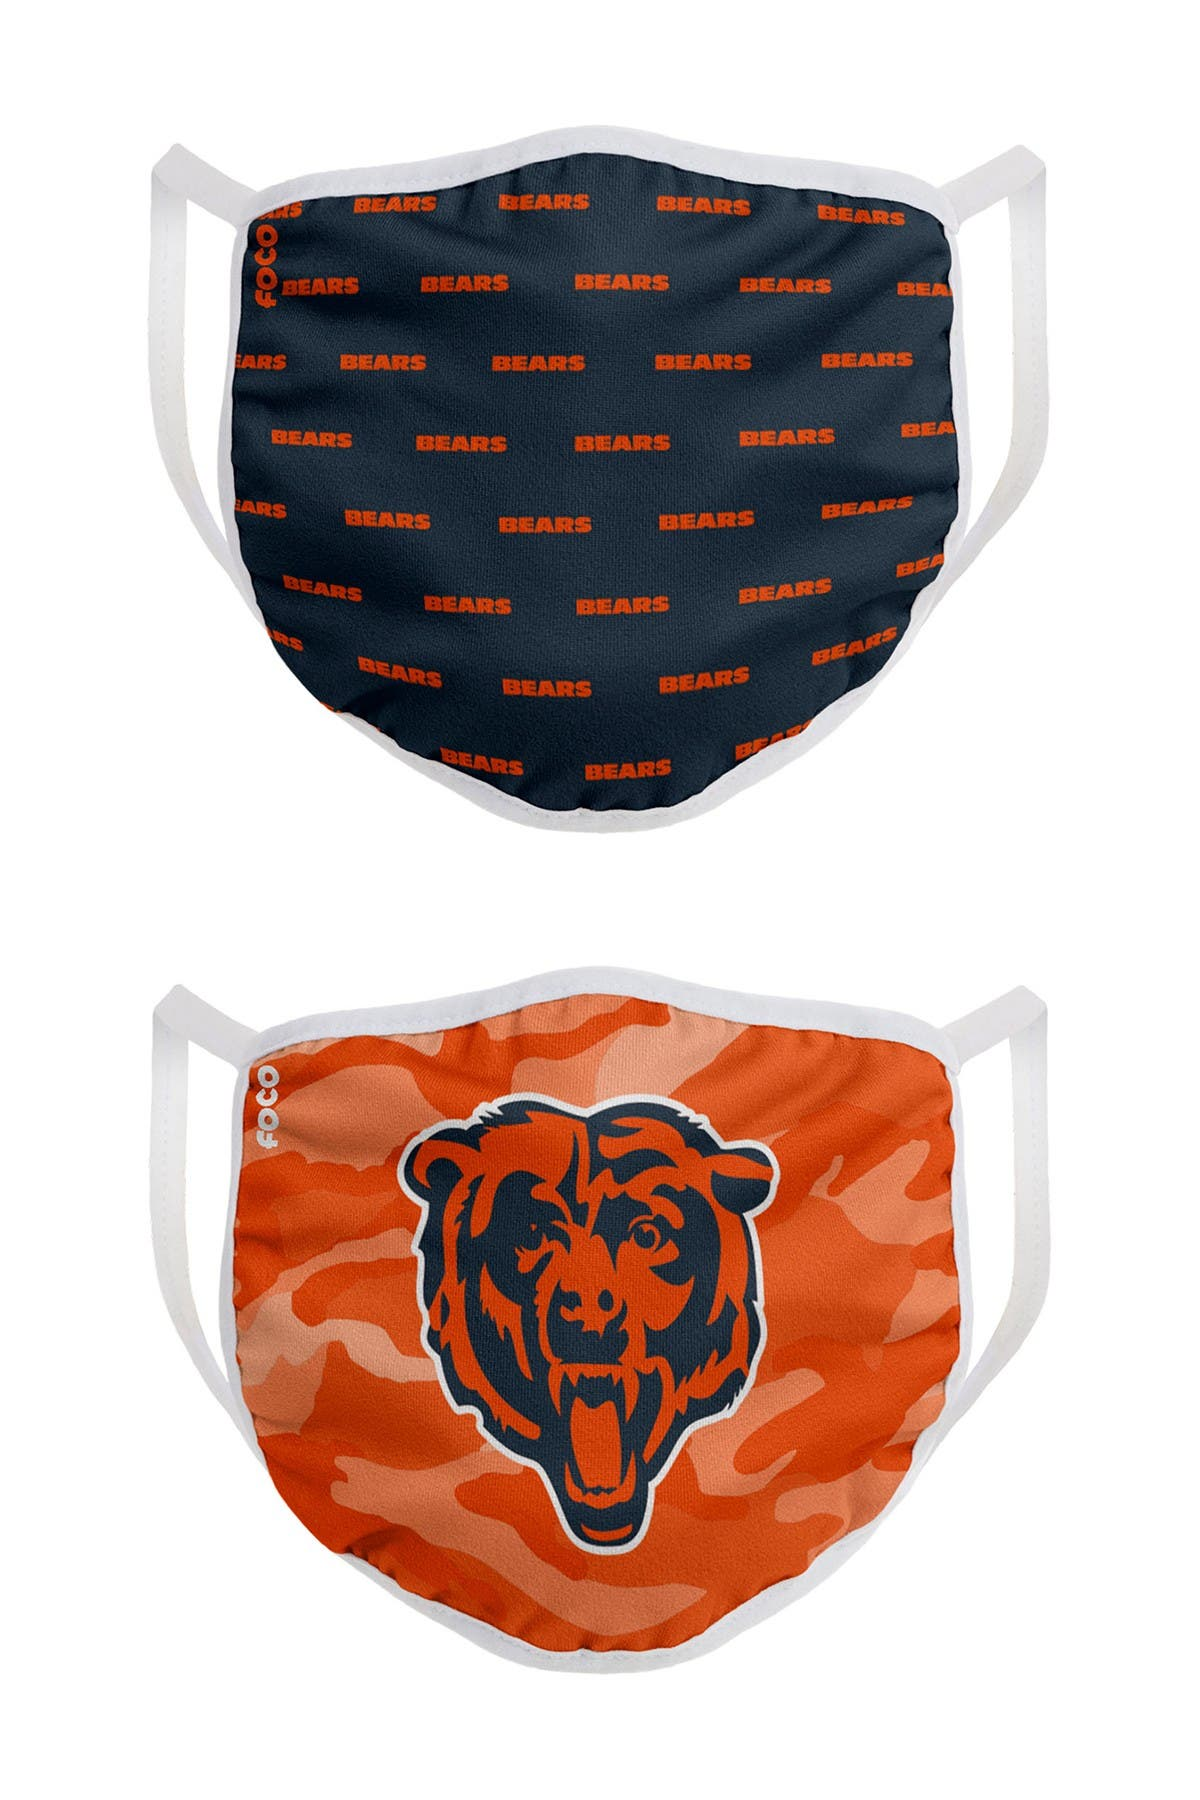 Image of FOCO NFL Chicago Bears Clutch Printed Face Cover - Pack of 2